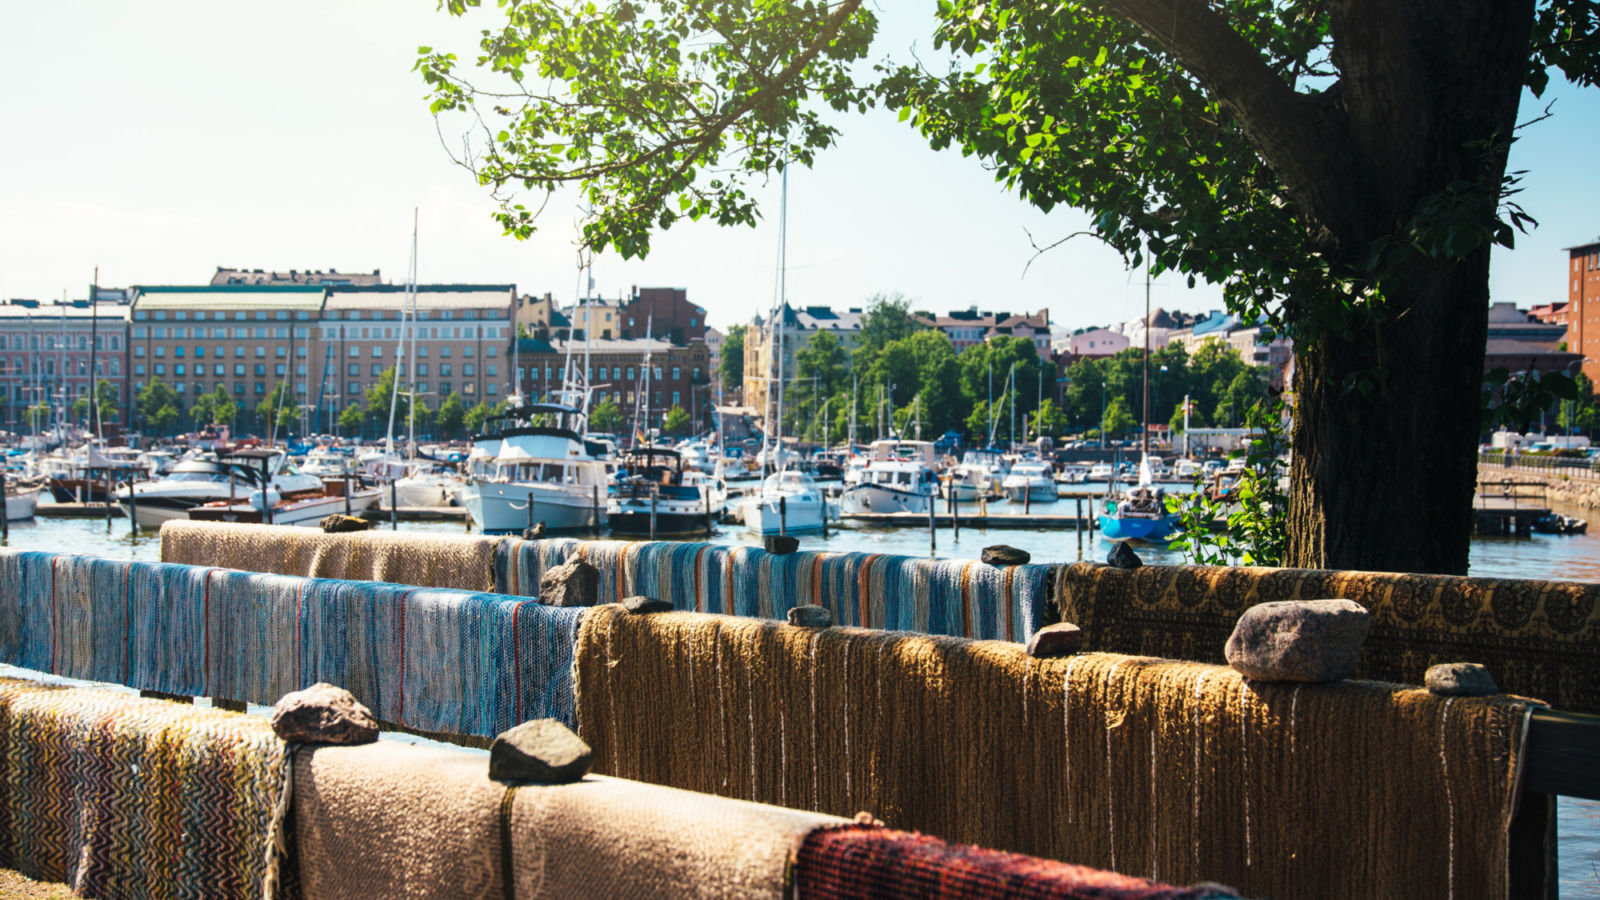 Read what to do in Helsinki in the summer and how to spend it like a local